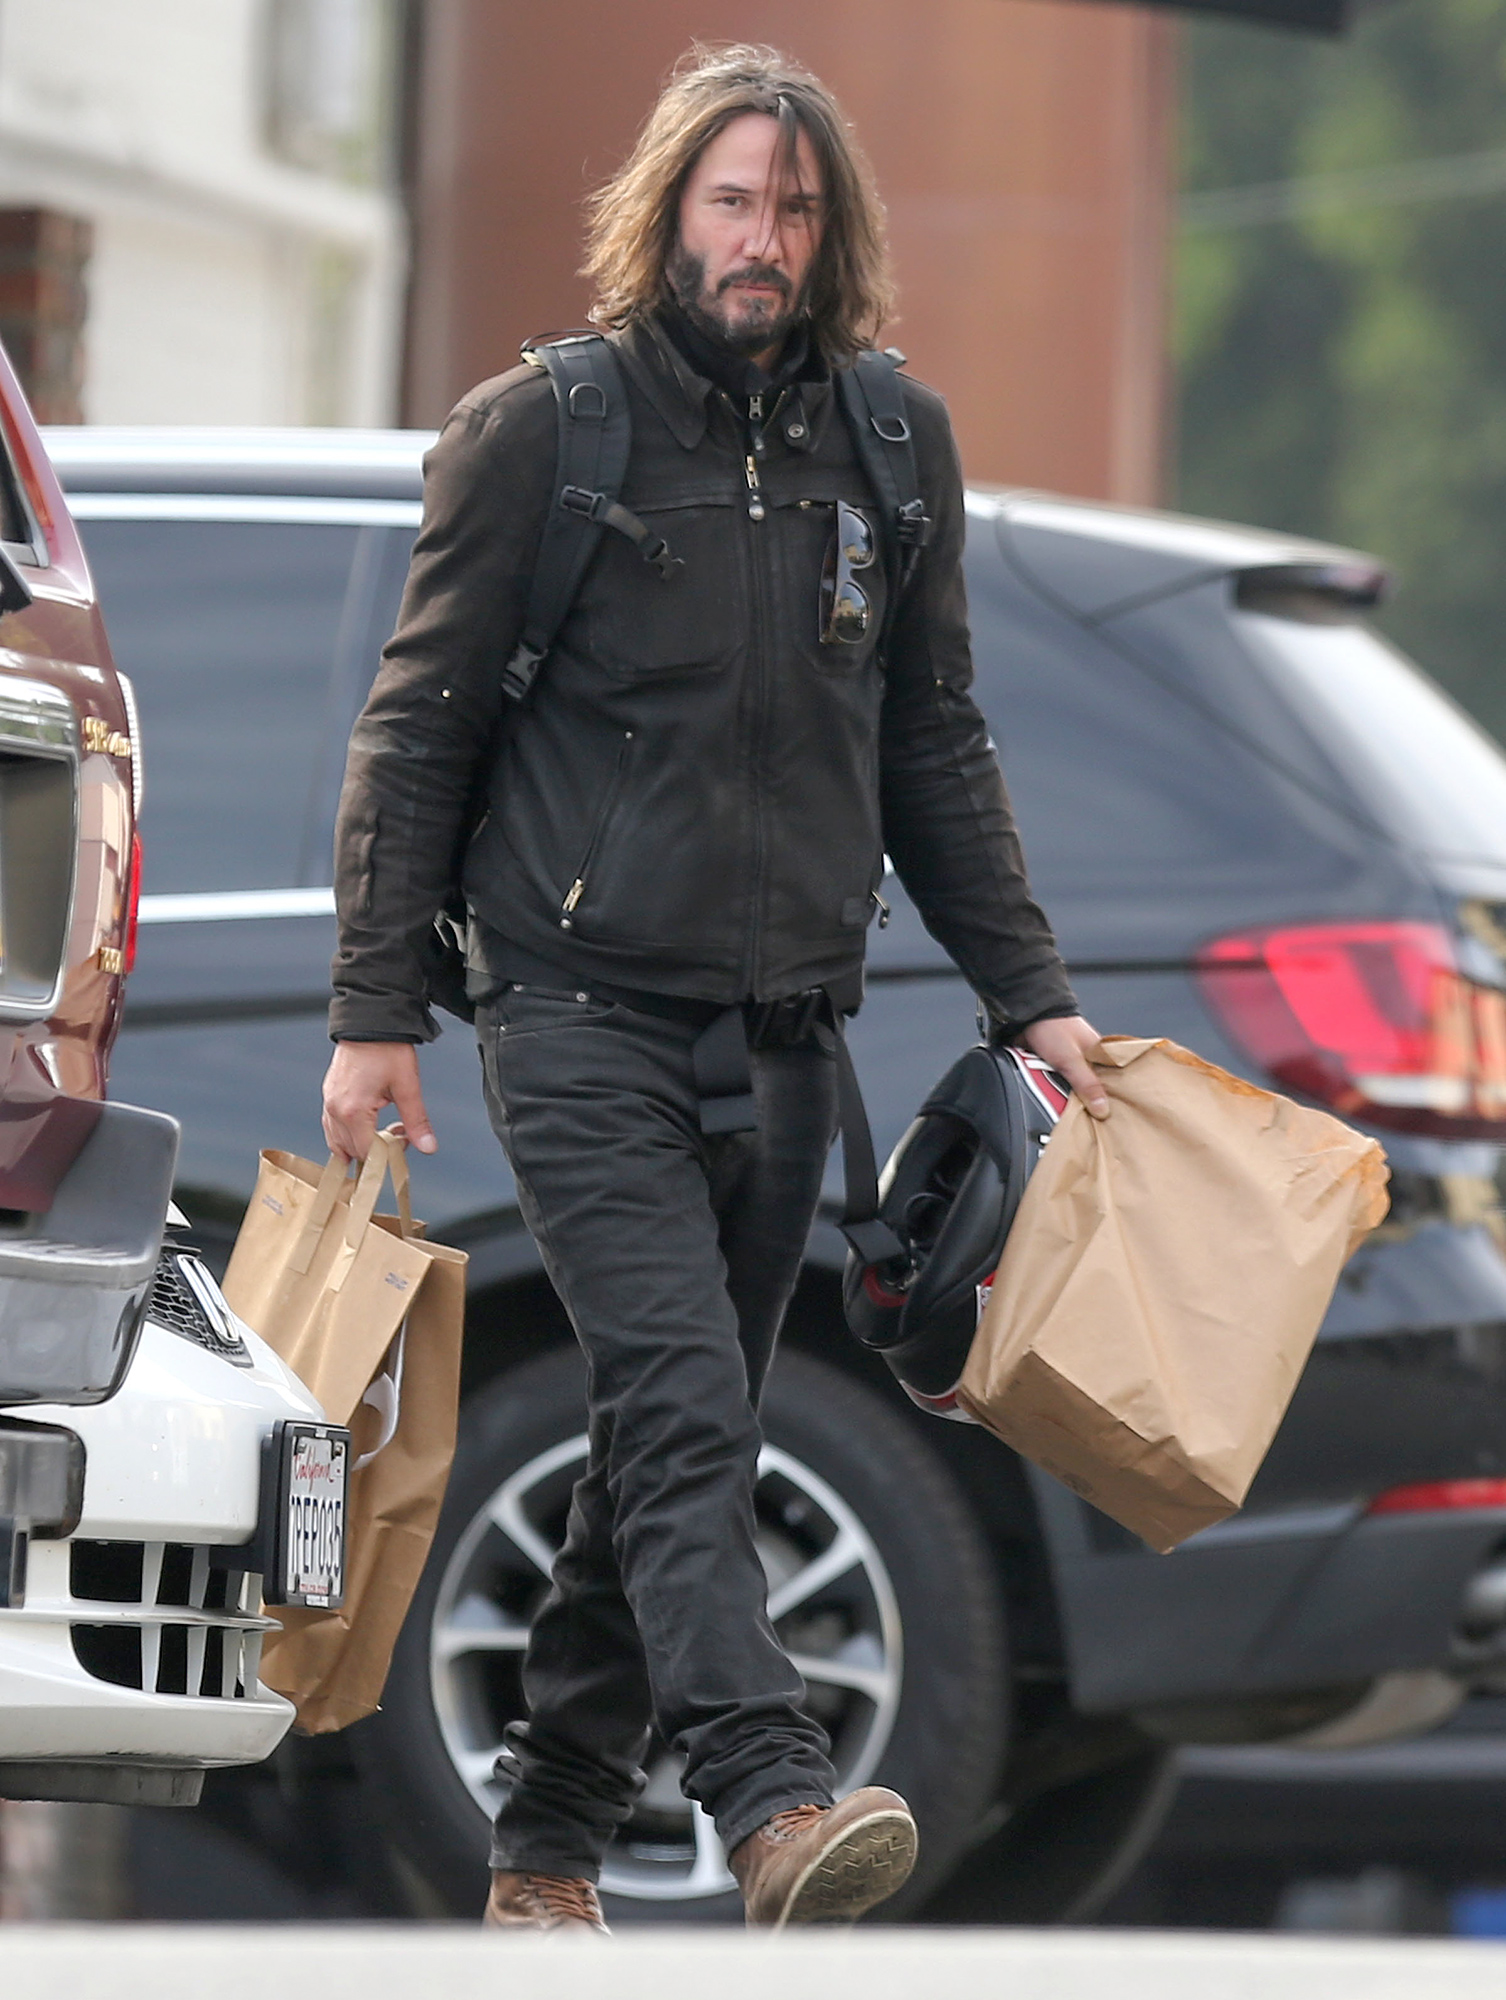 EXCLUSIVE: Keanu Reeves picks up a large takeaway order from Greenblatt's deli on New Year's Day in Los Angeles, California.